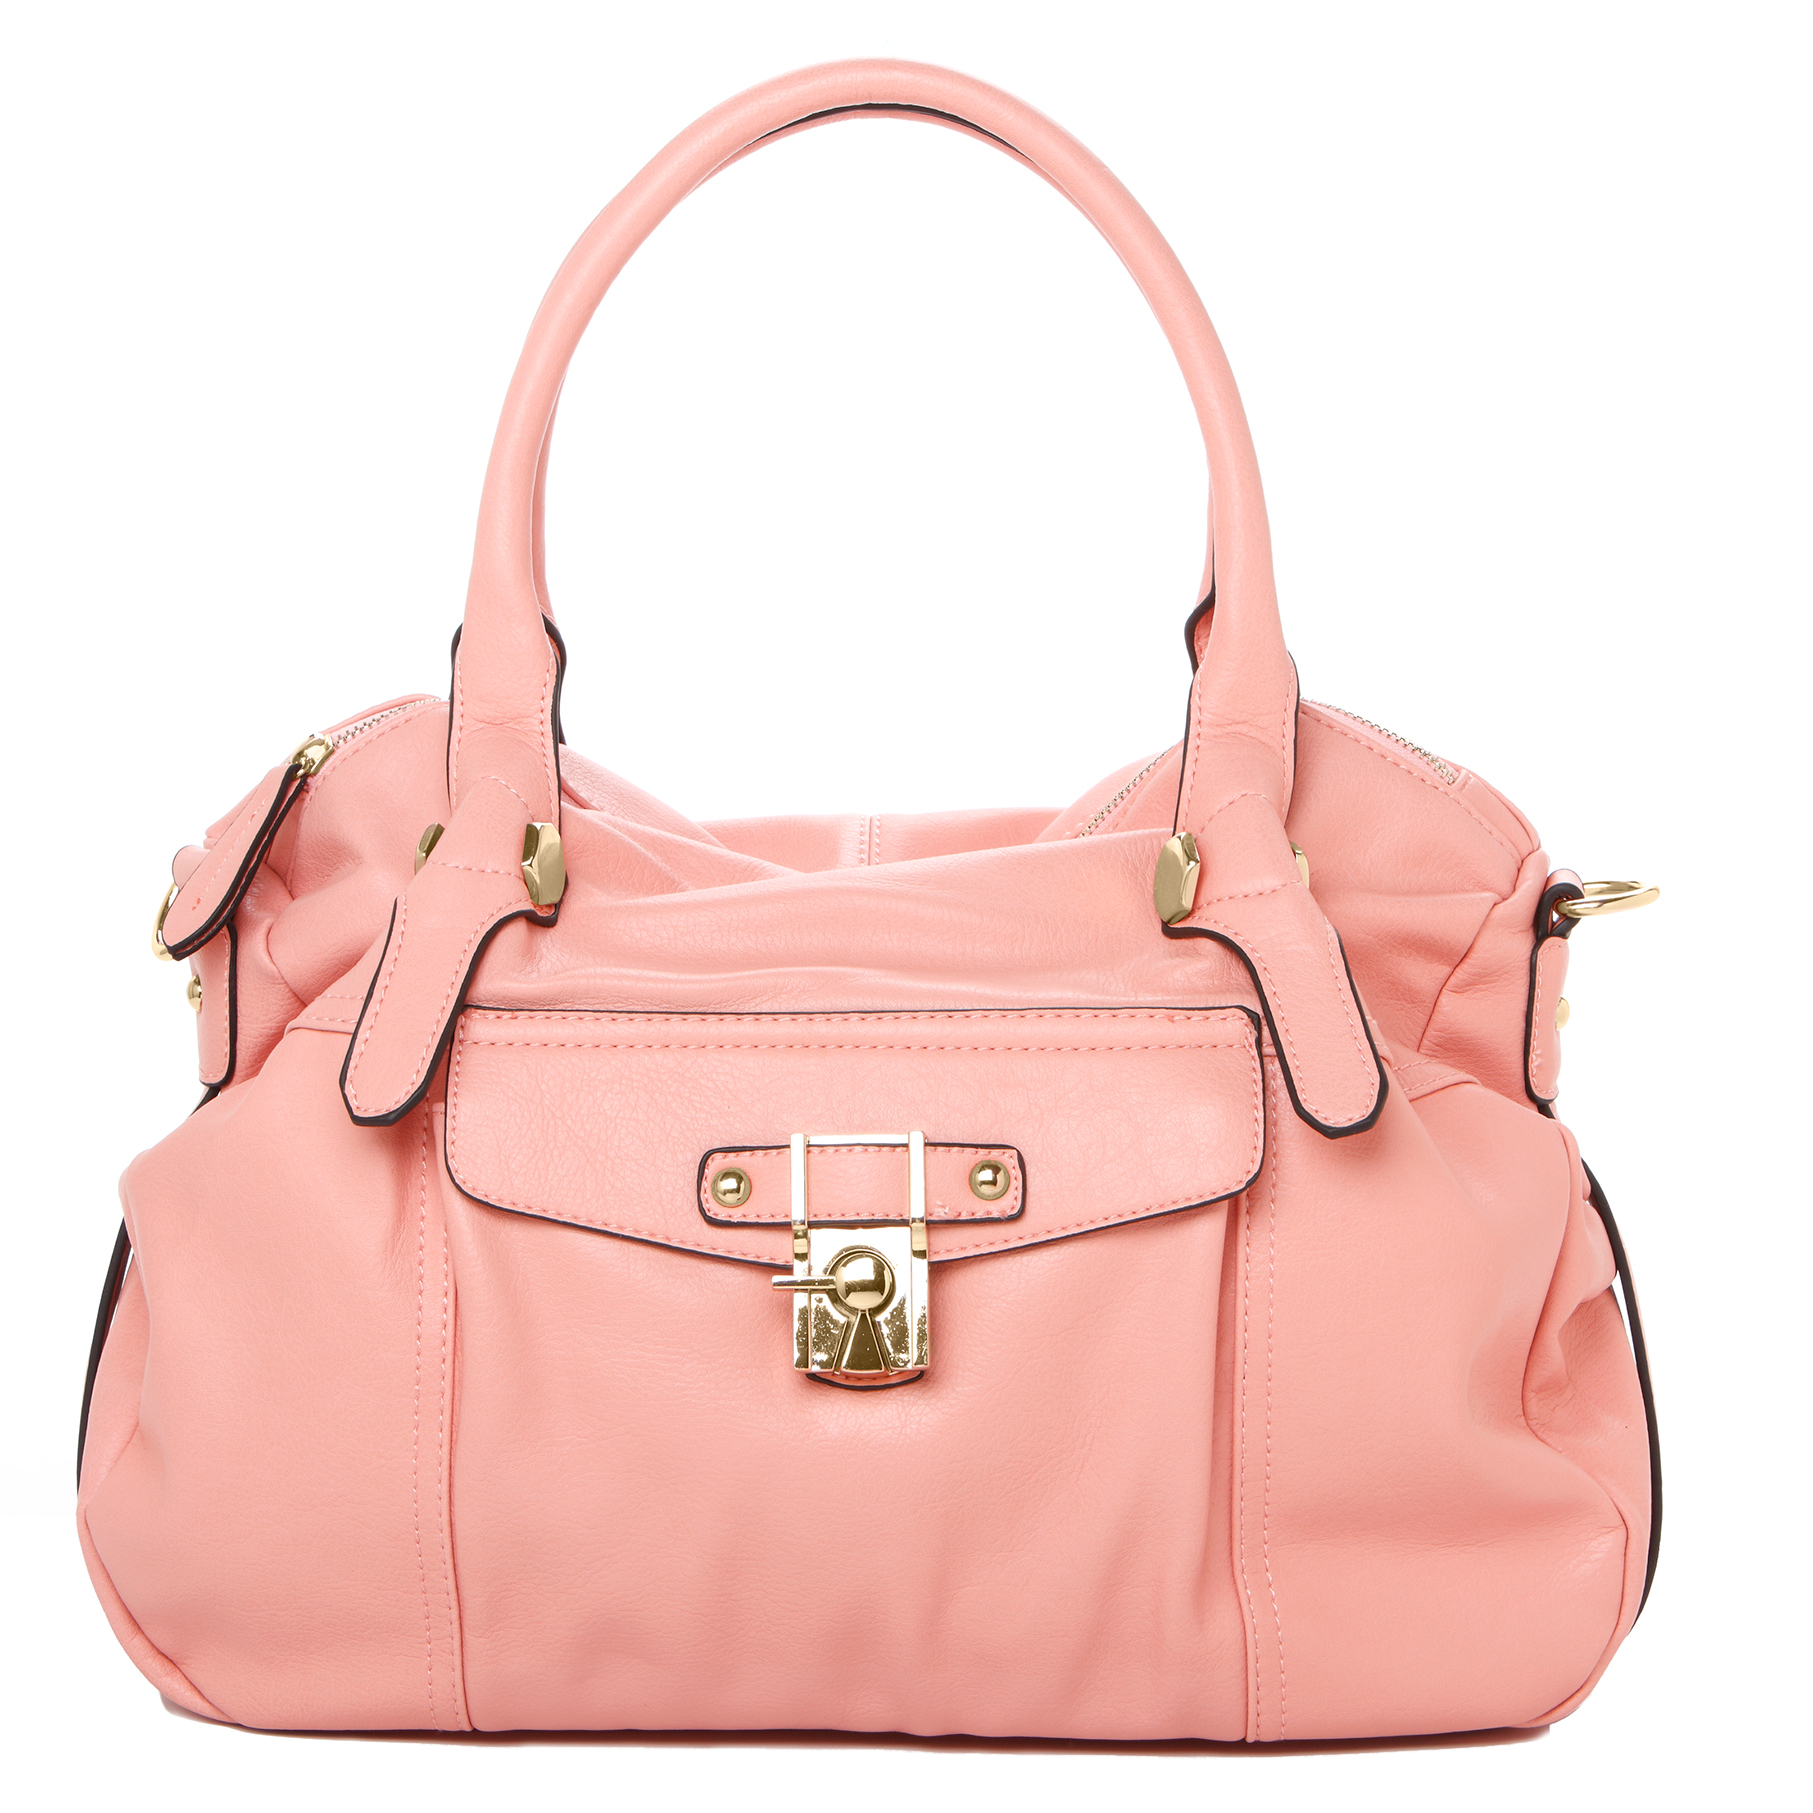 CAME Pink Office Tote Style Satchel Handbag Front